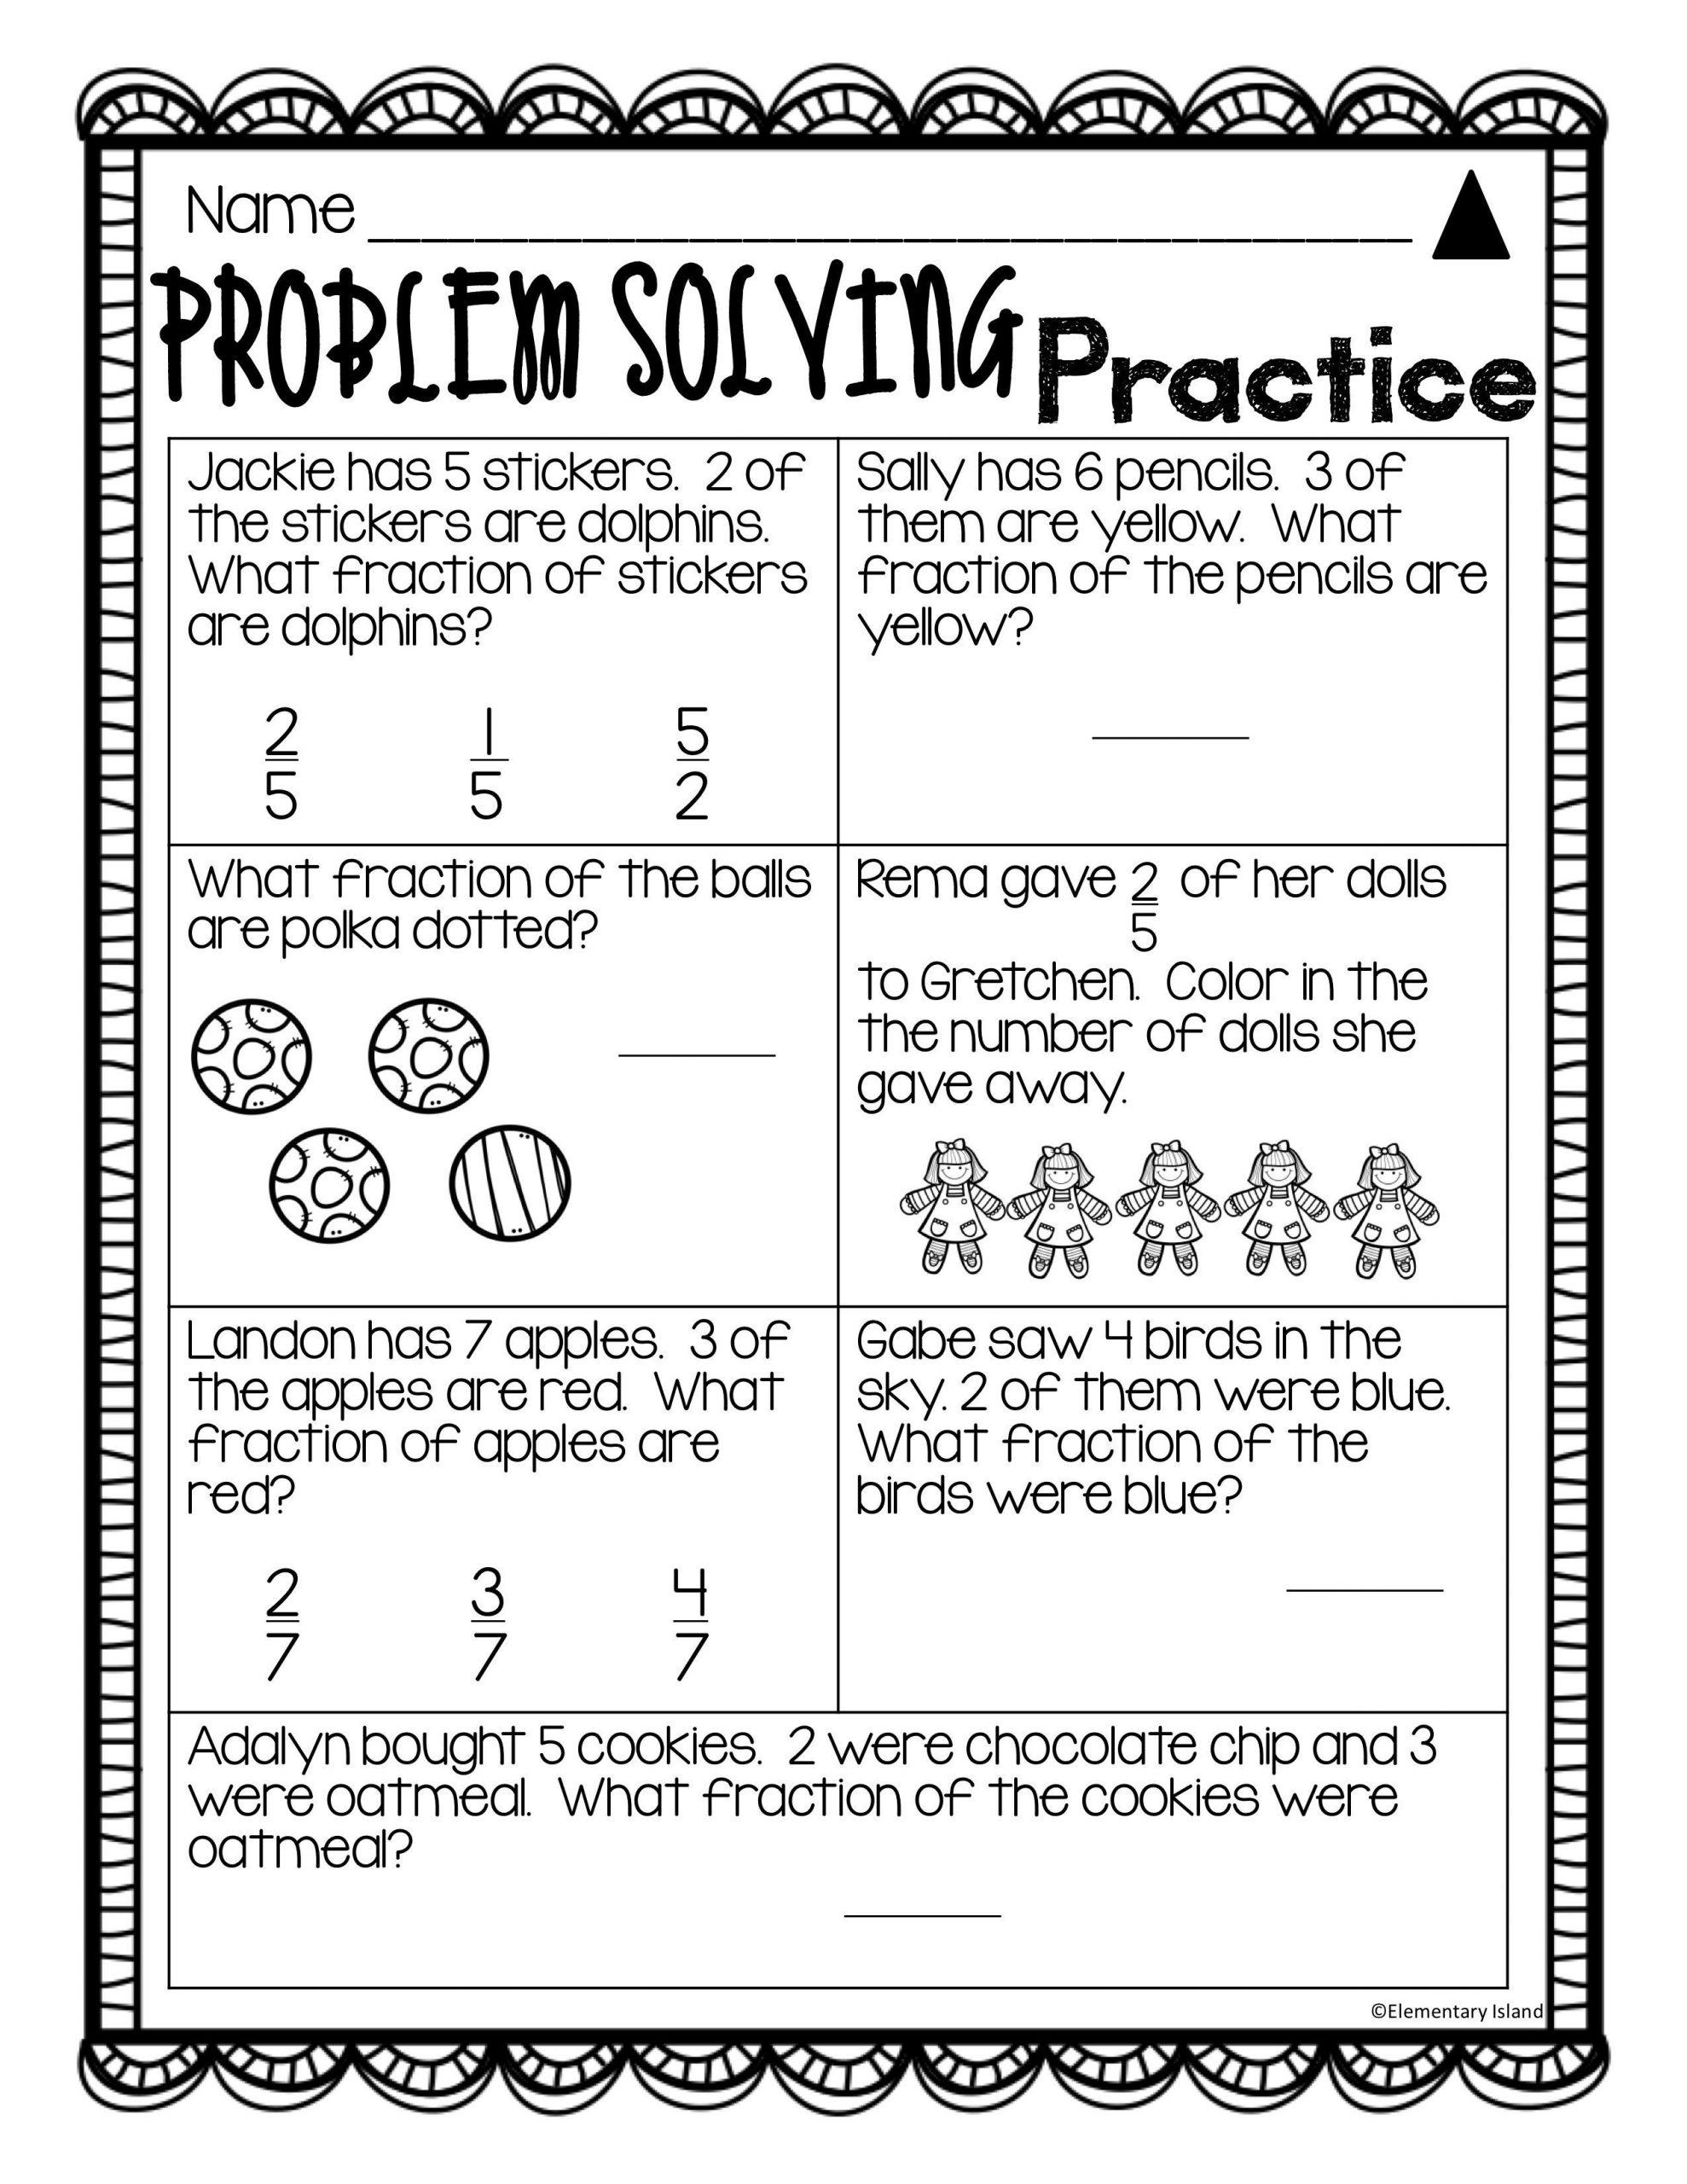 Fractions Worksheets 2nd Grade Fraction Worksheets 2nd Grade Differentiated Leveled